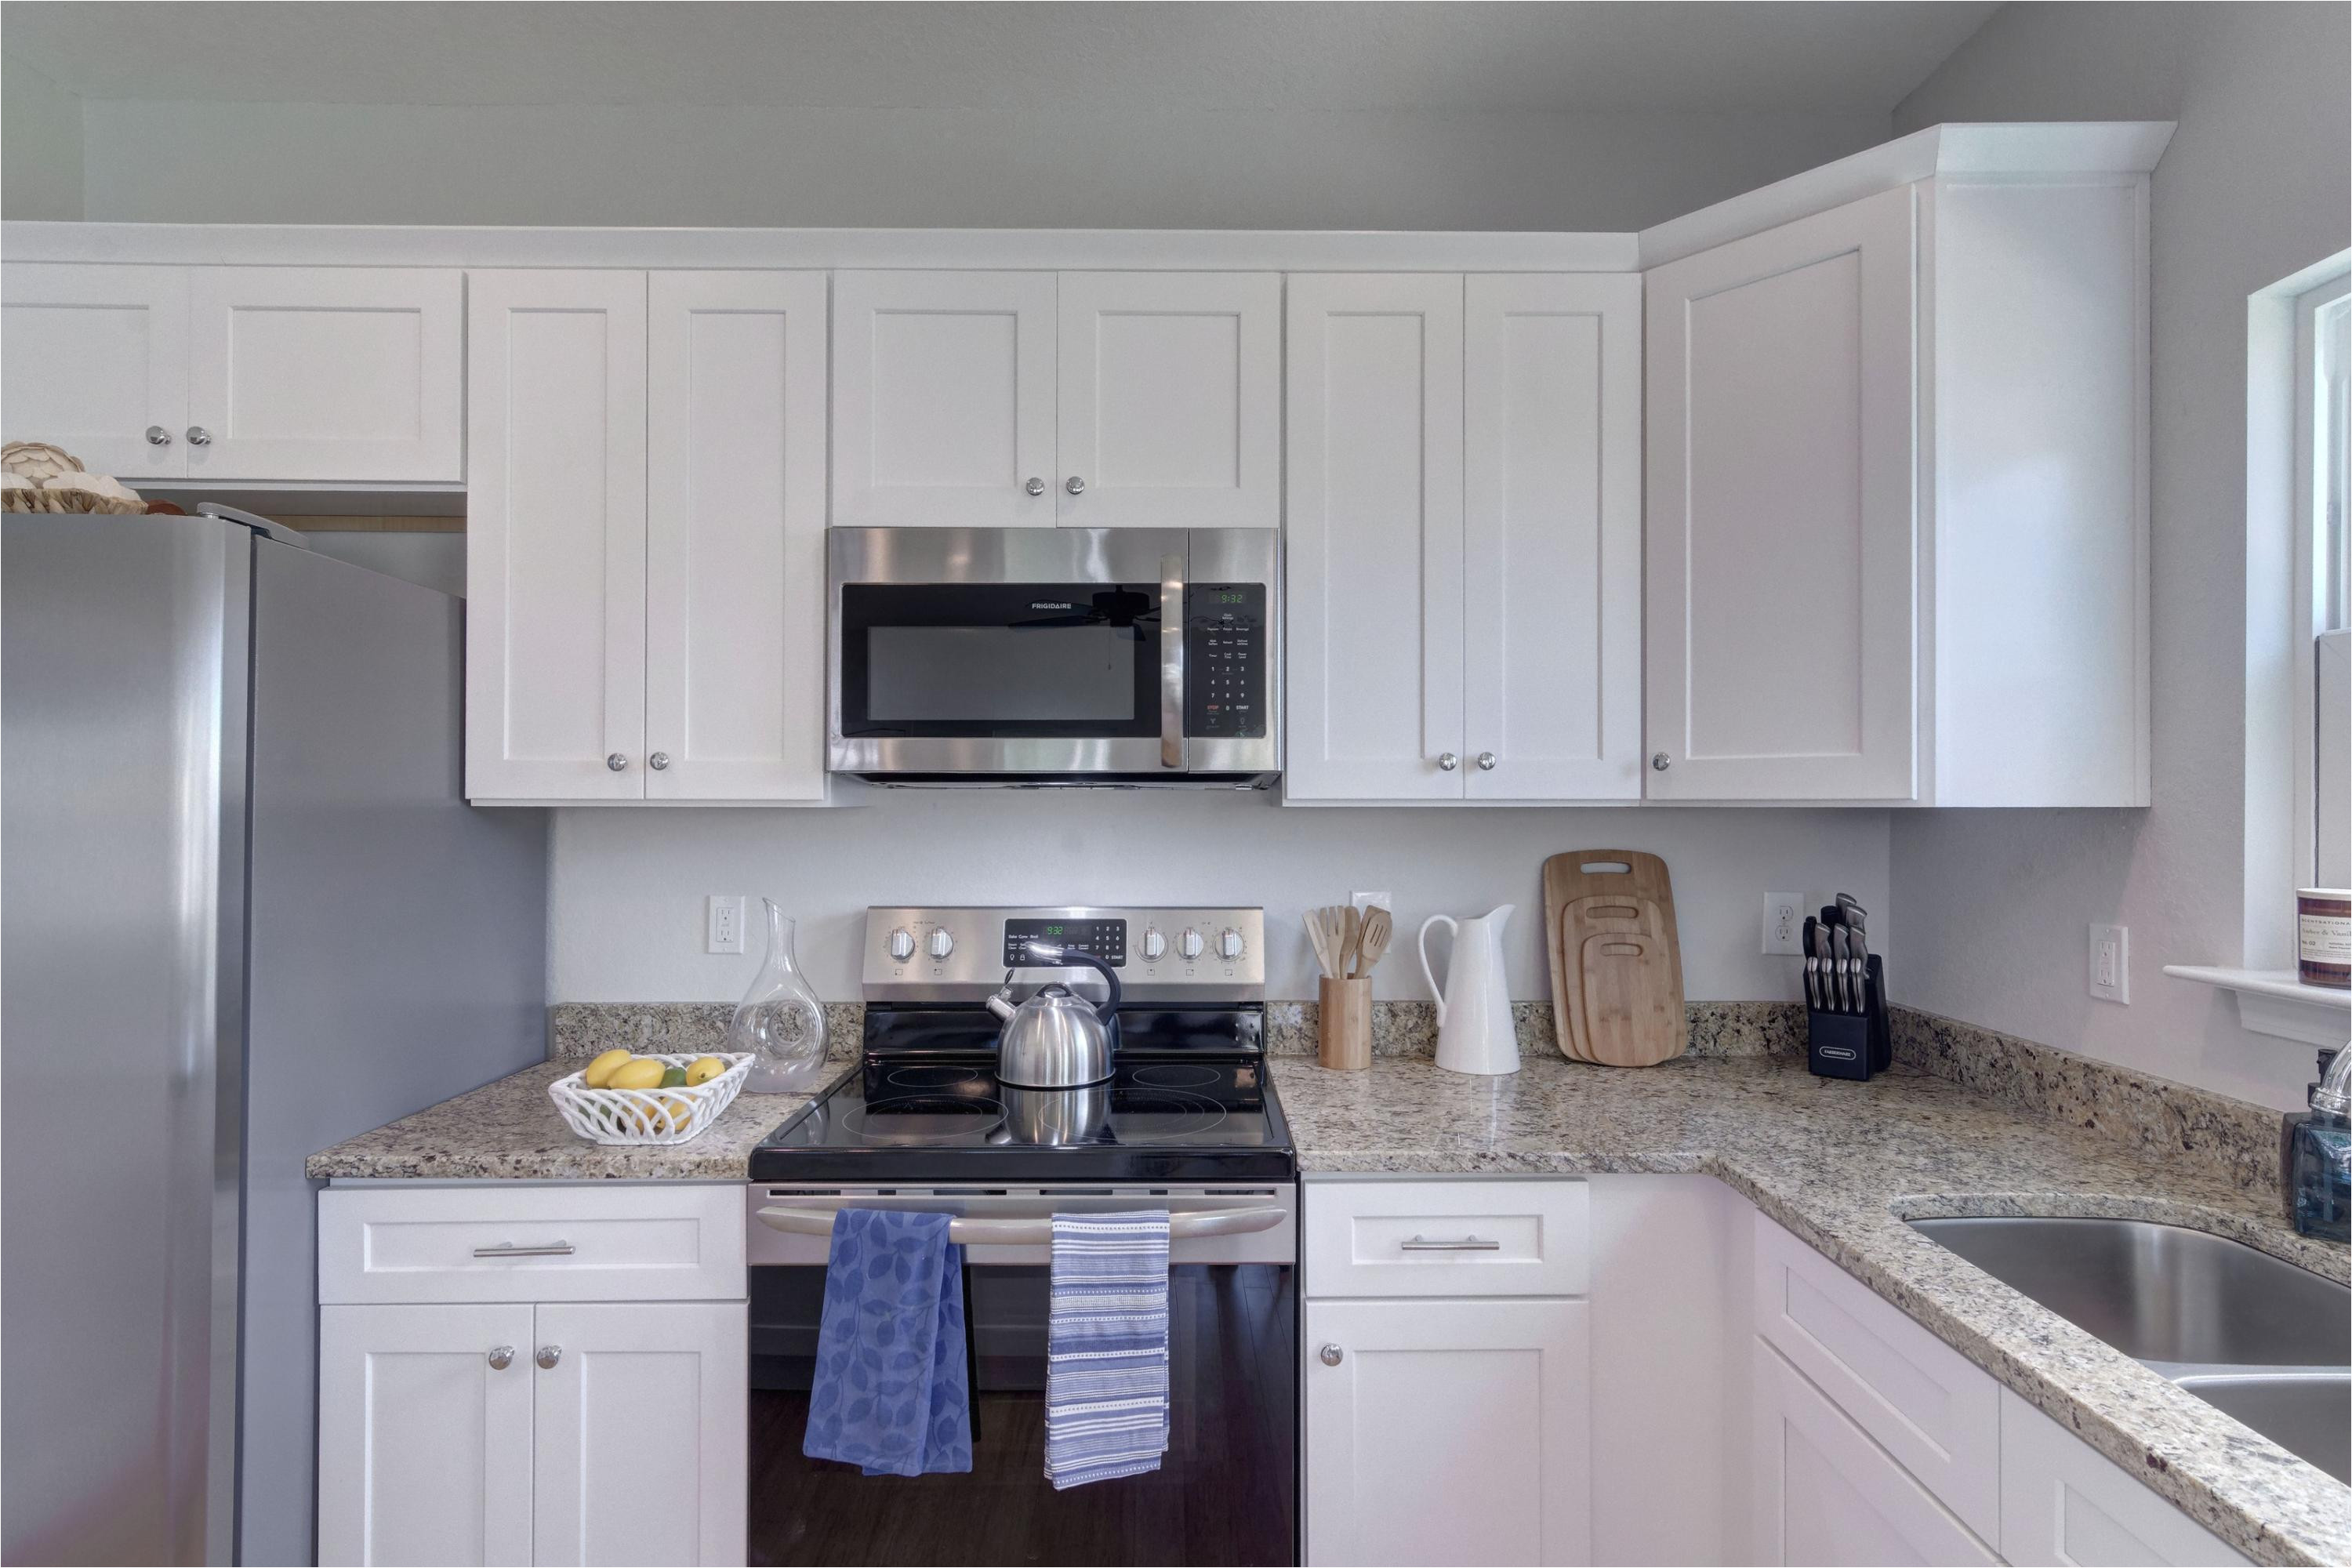 cornerstone town home are ideally located in the historical community of east hill right in the heart of pensacola these town homes offer